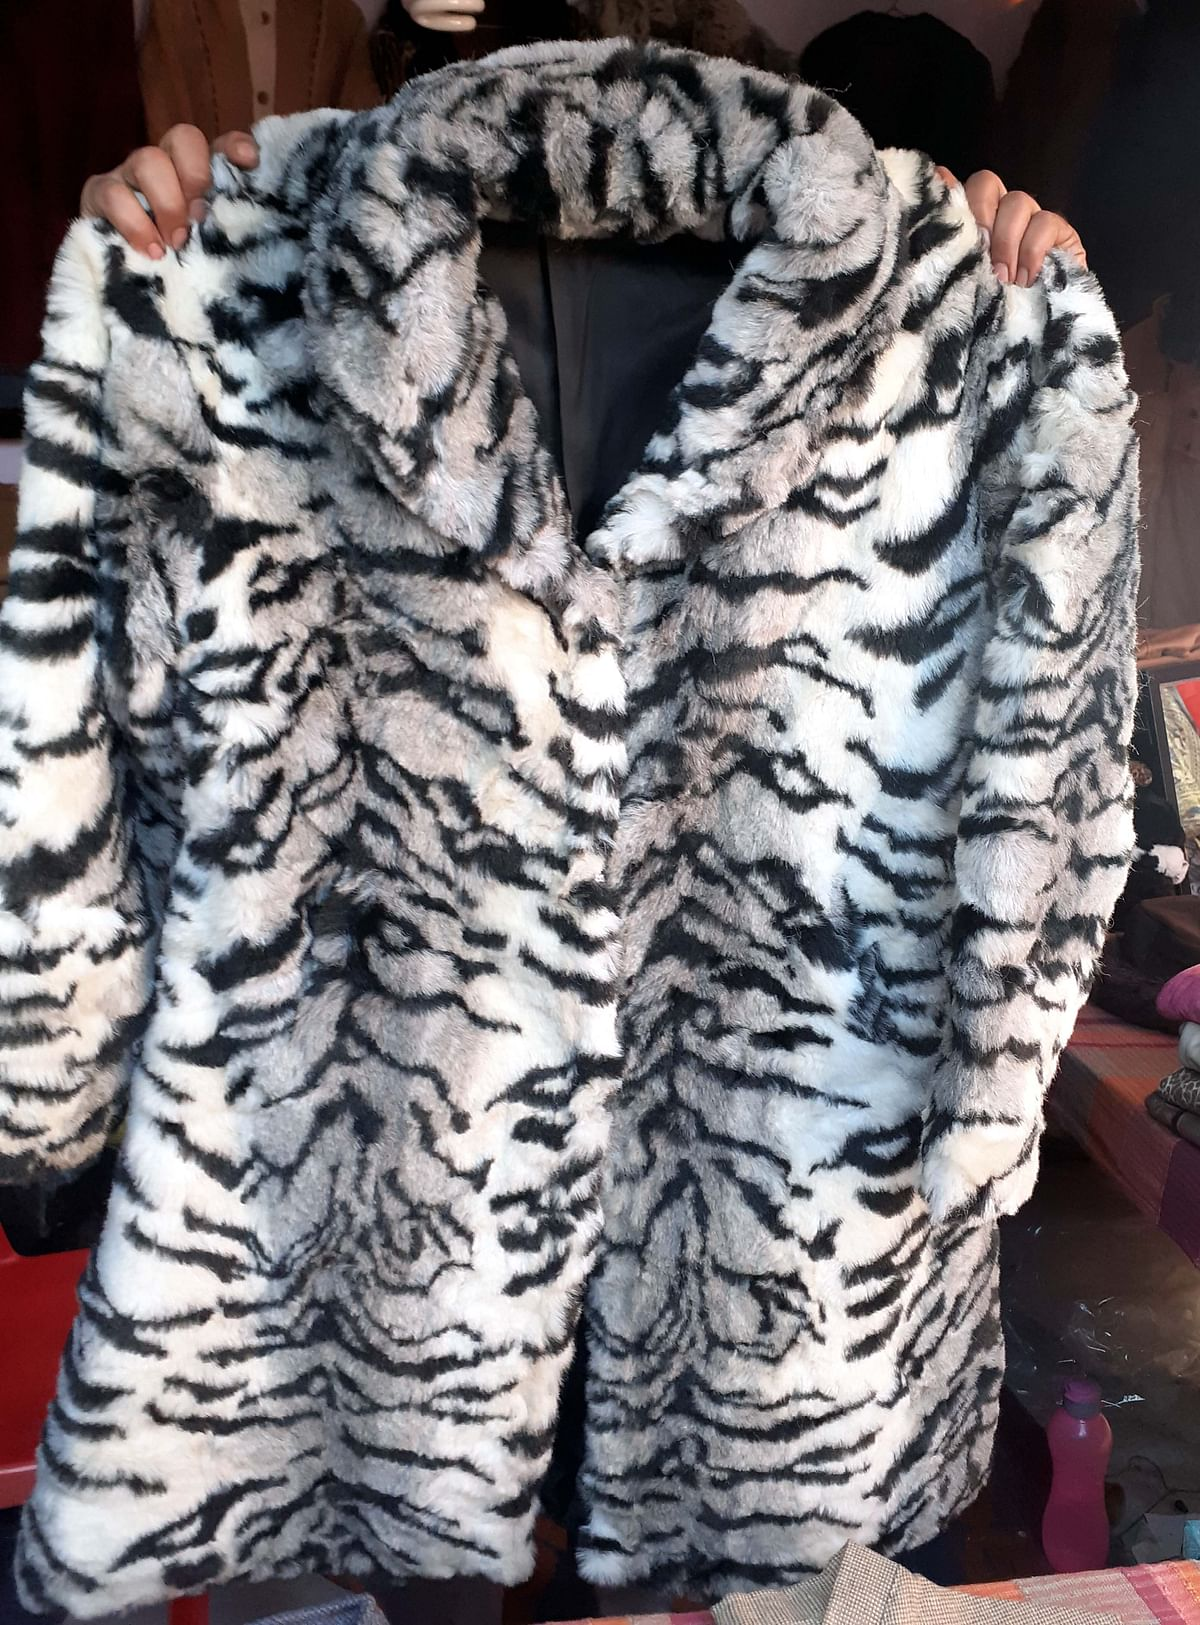 A long-coat made of sheep wool  with  printed tiger stripes